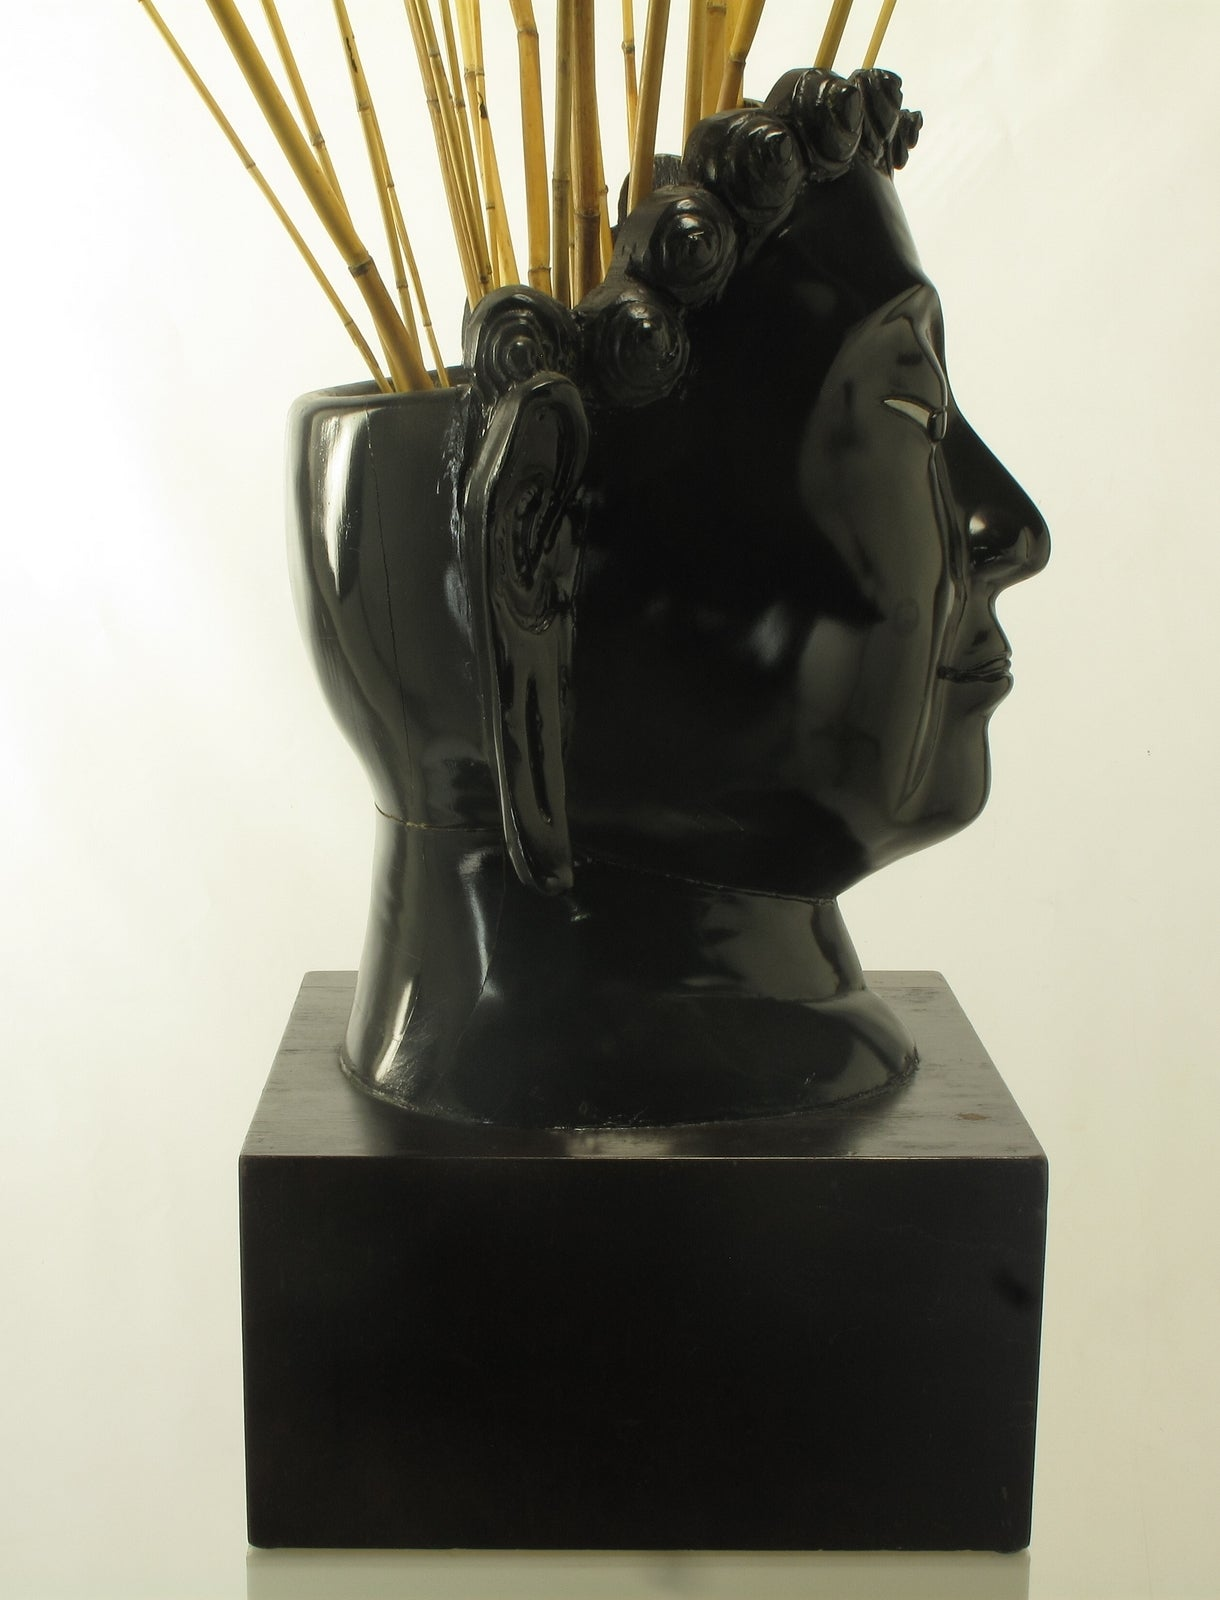 Buddha-Form Mahogany and Black Lacquer Sculpture on White Lucite Pedestal For Sale 5